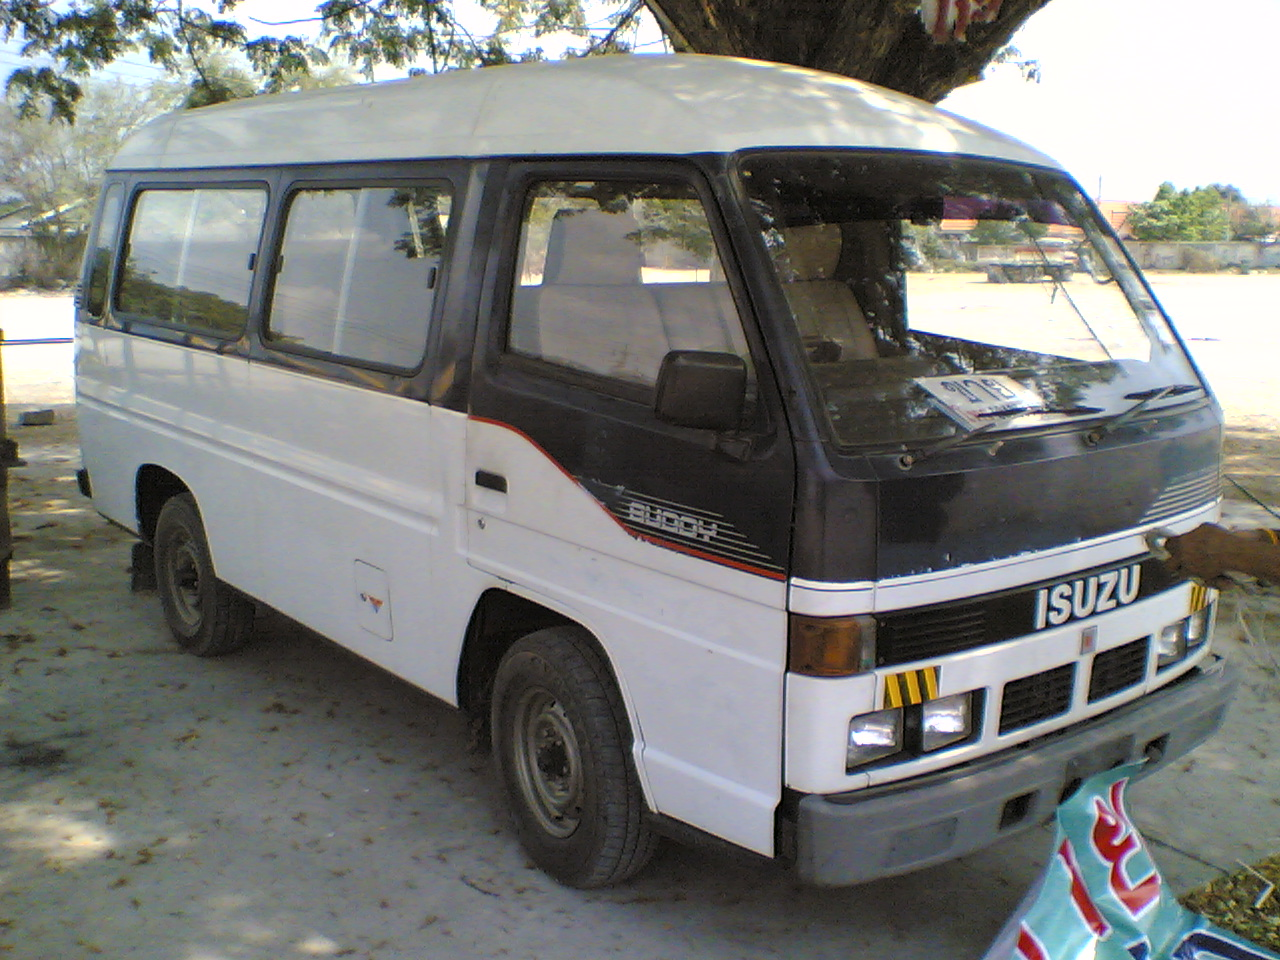 Isuzu buddy photo - 3